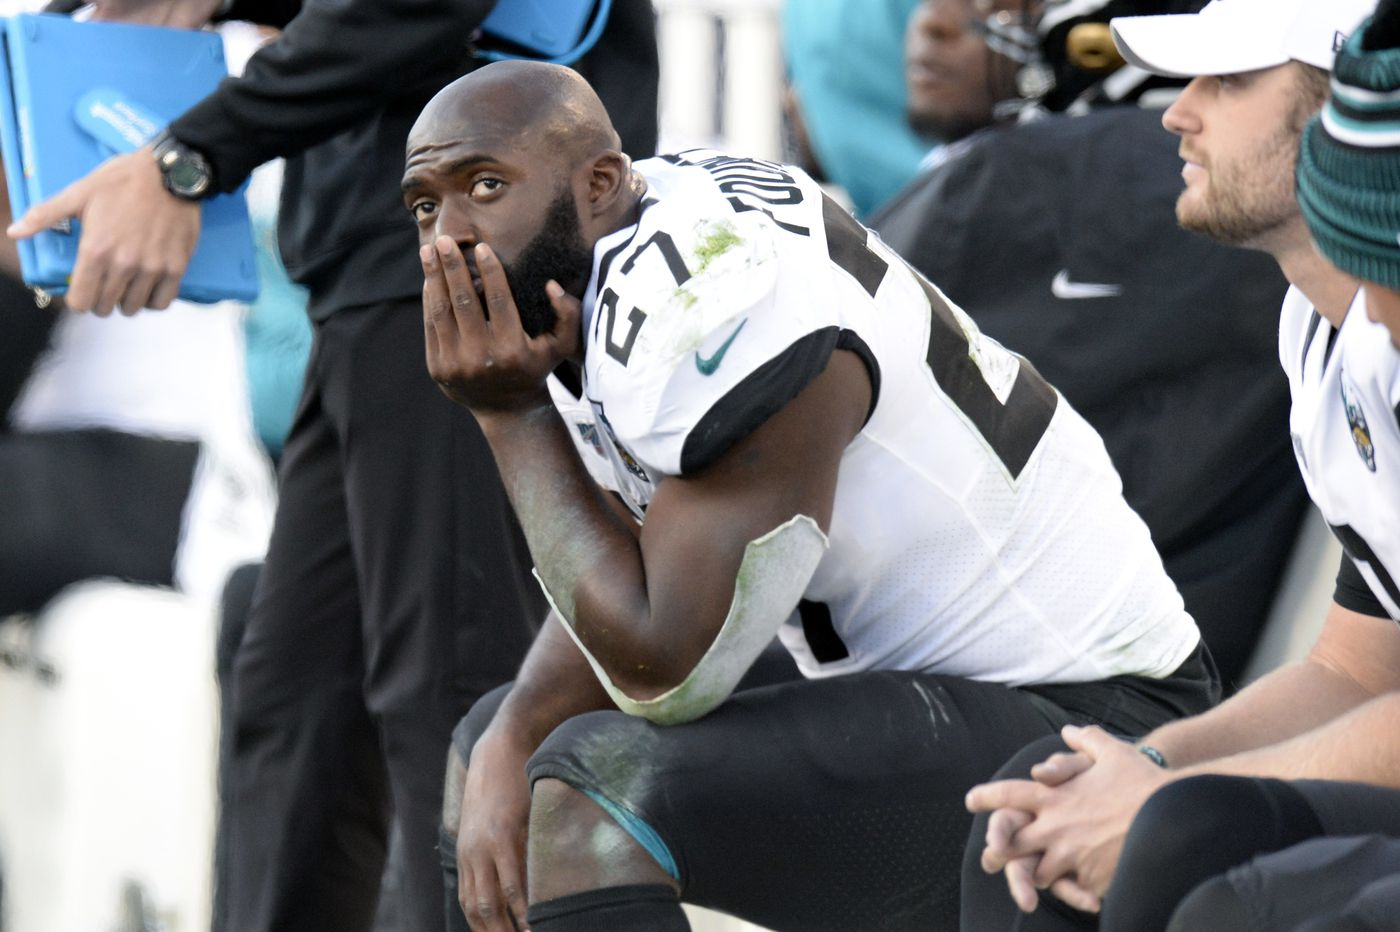 Jaguars surprisingly cut Leonard Fournette, all-in Padres get Mike Clevinger, and more sports news